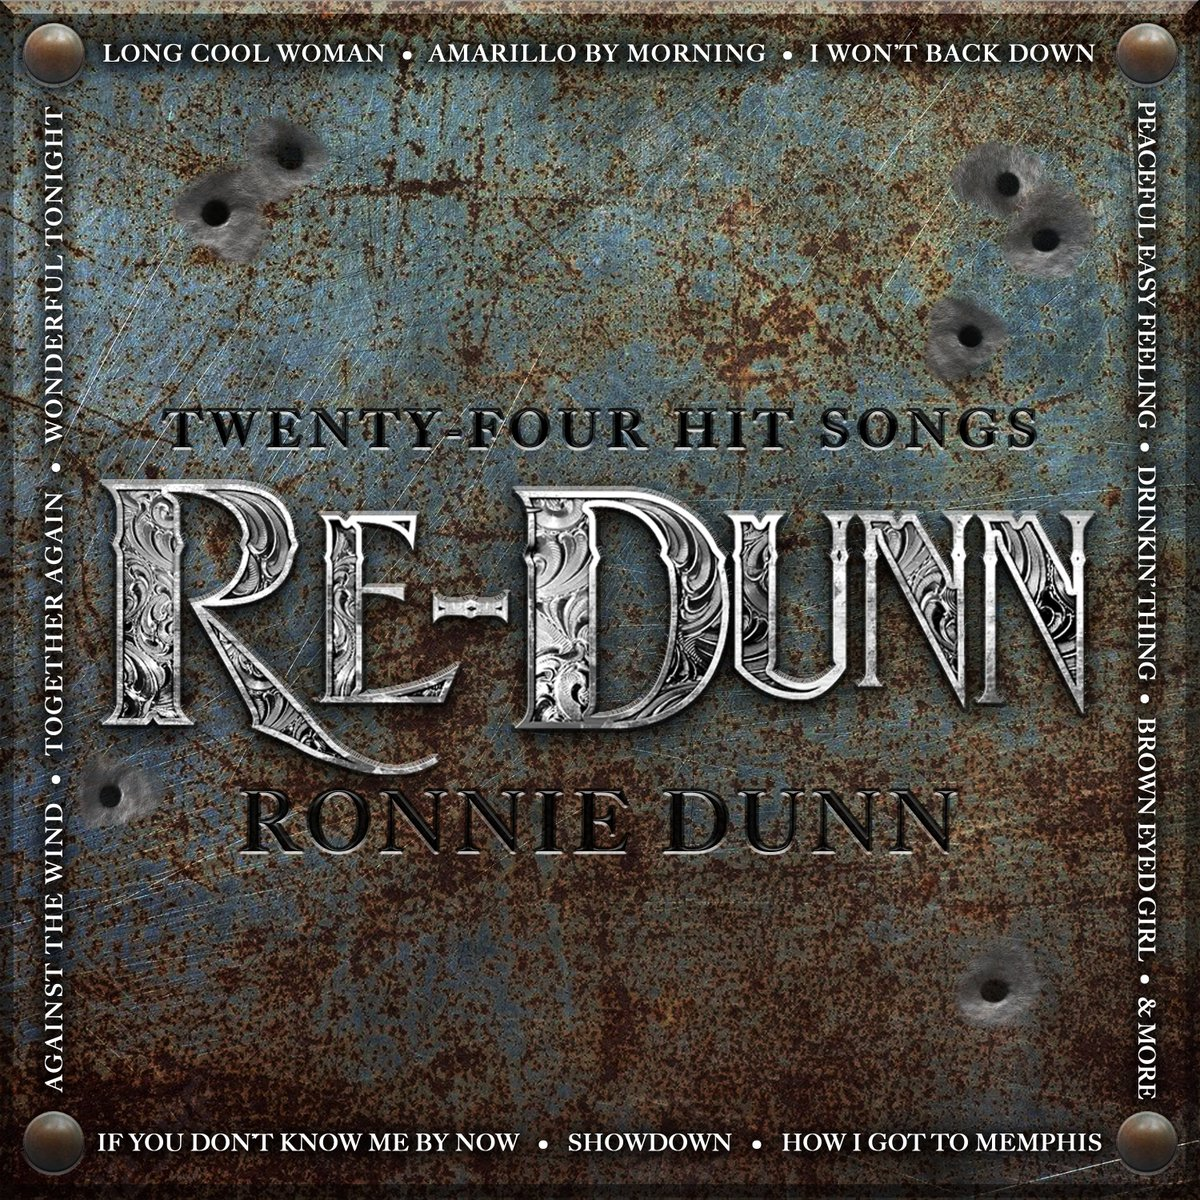 Ronnie's 24 track country / rock covers album #REDUNN has officially been out for a year! What are some of your favorite songs on it? Listen here: